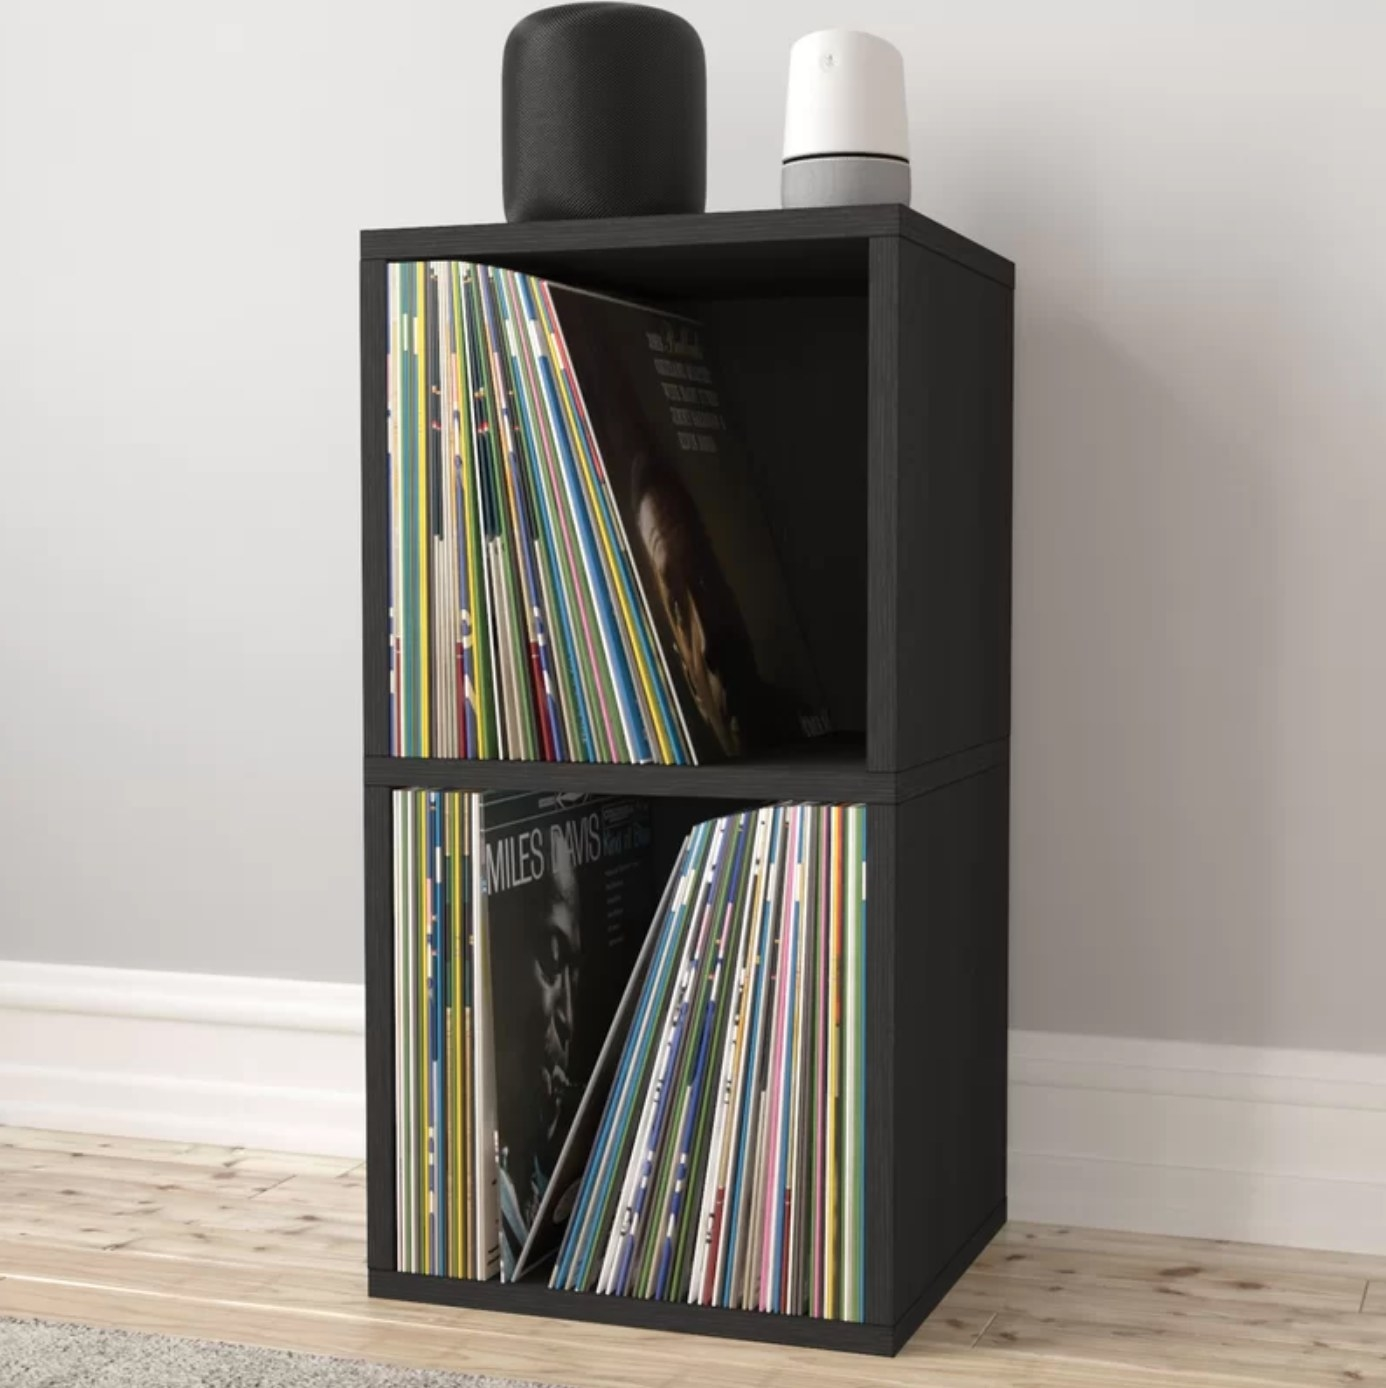 The cube bookcase in black